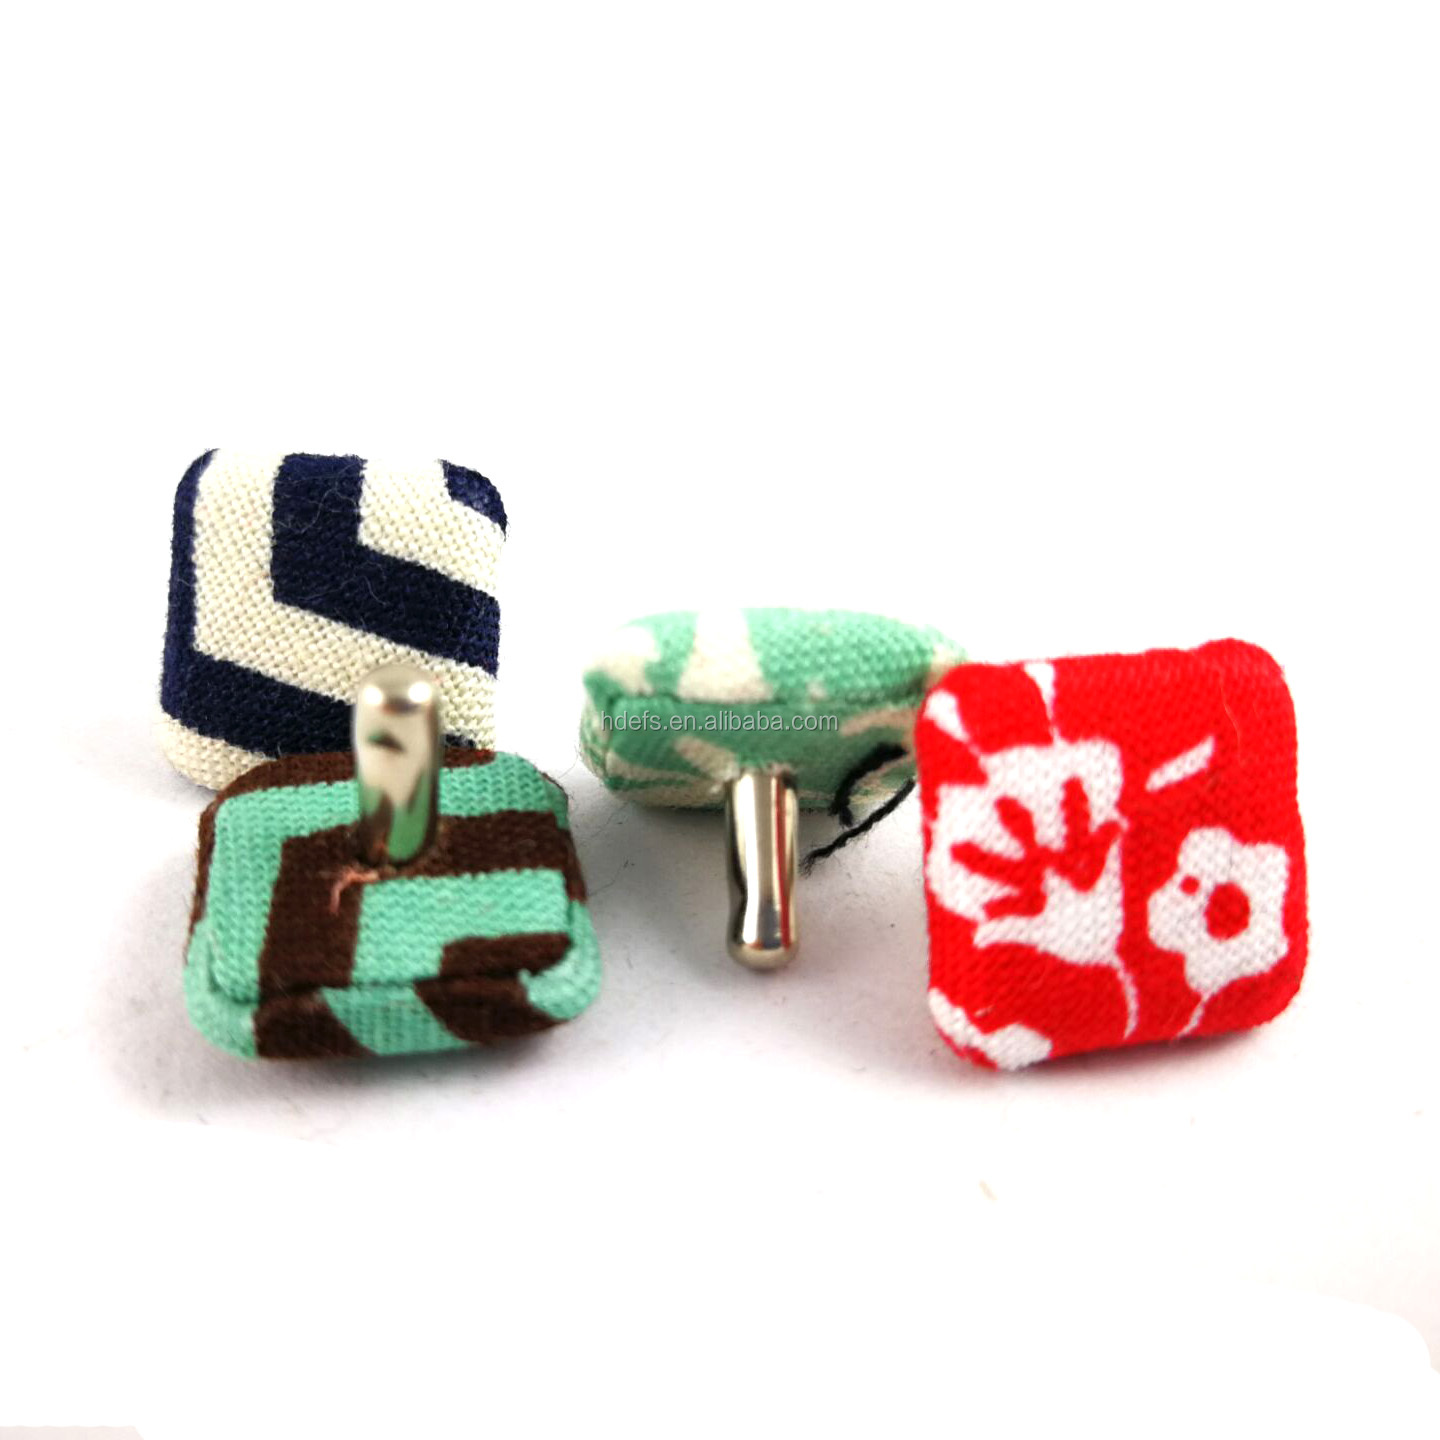 22mm square fabric covered snap button nail button